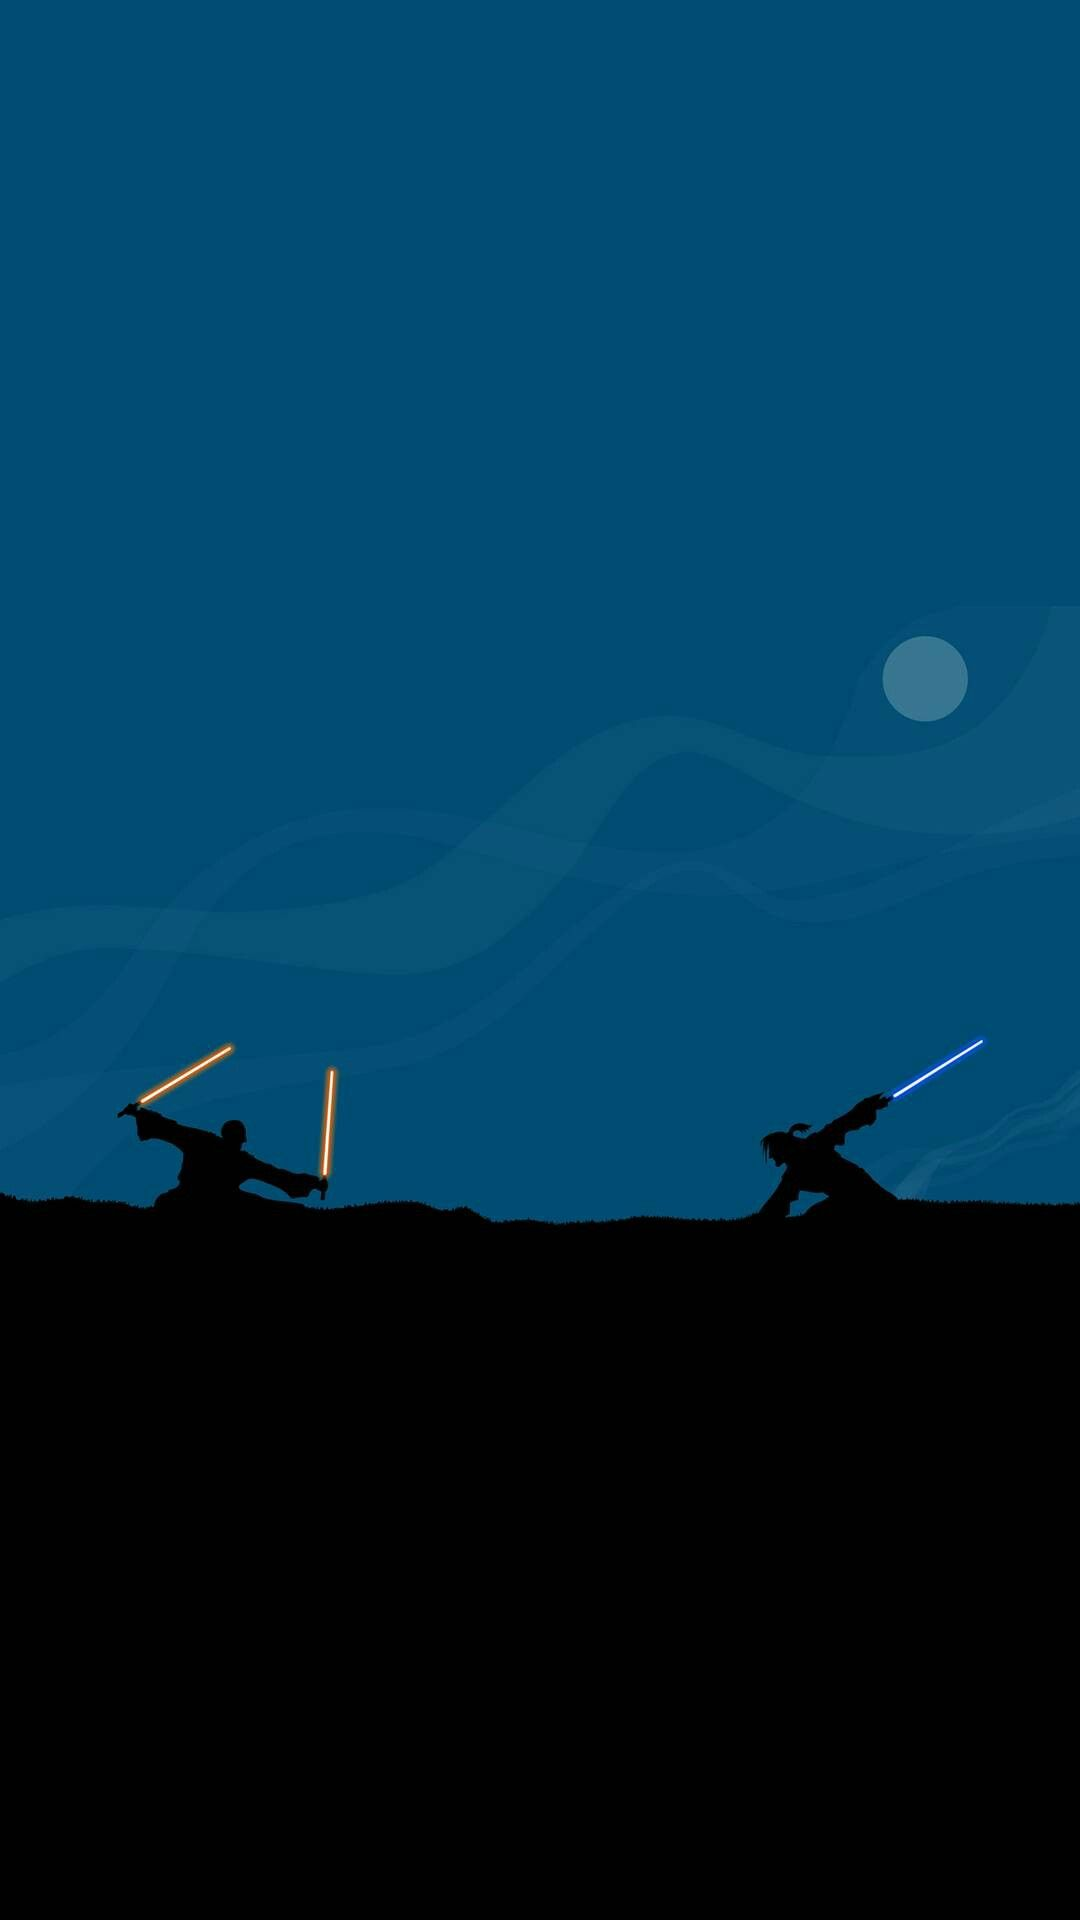 Star Wars Rey And Kylo Battle Fan Art Minimalism Wallpaper Star Wars Wallpaper Rey Star Wars Cool Wallpapers For Phones